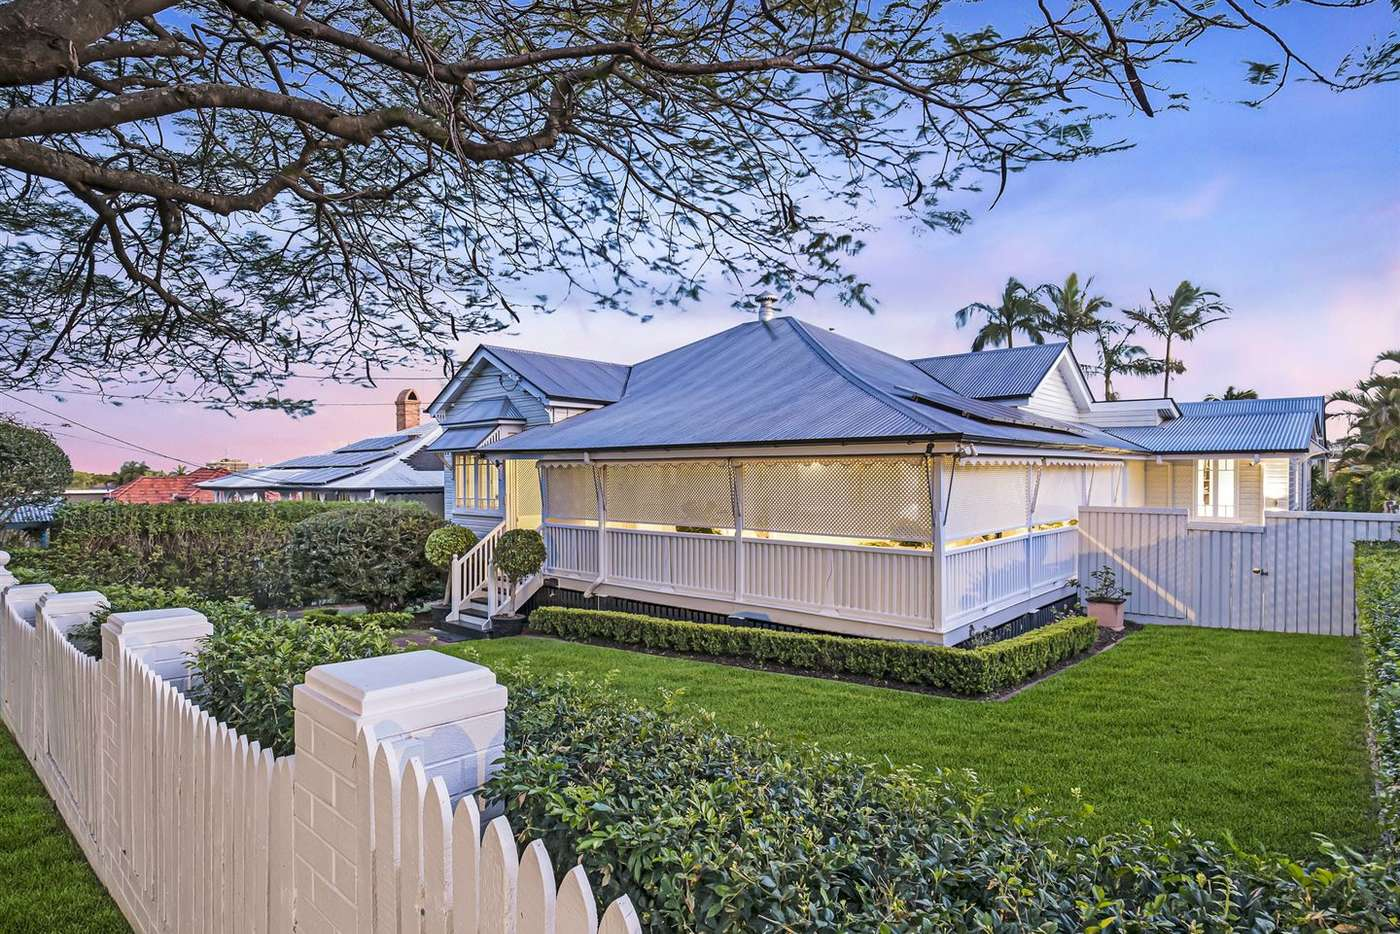 Main view of Homely house listing, 5 Sword Street, Ascot QLD 4007